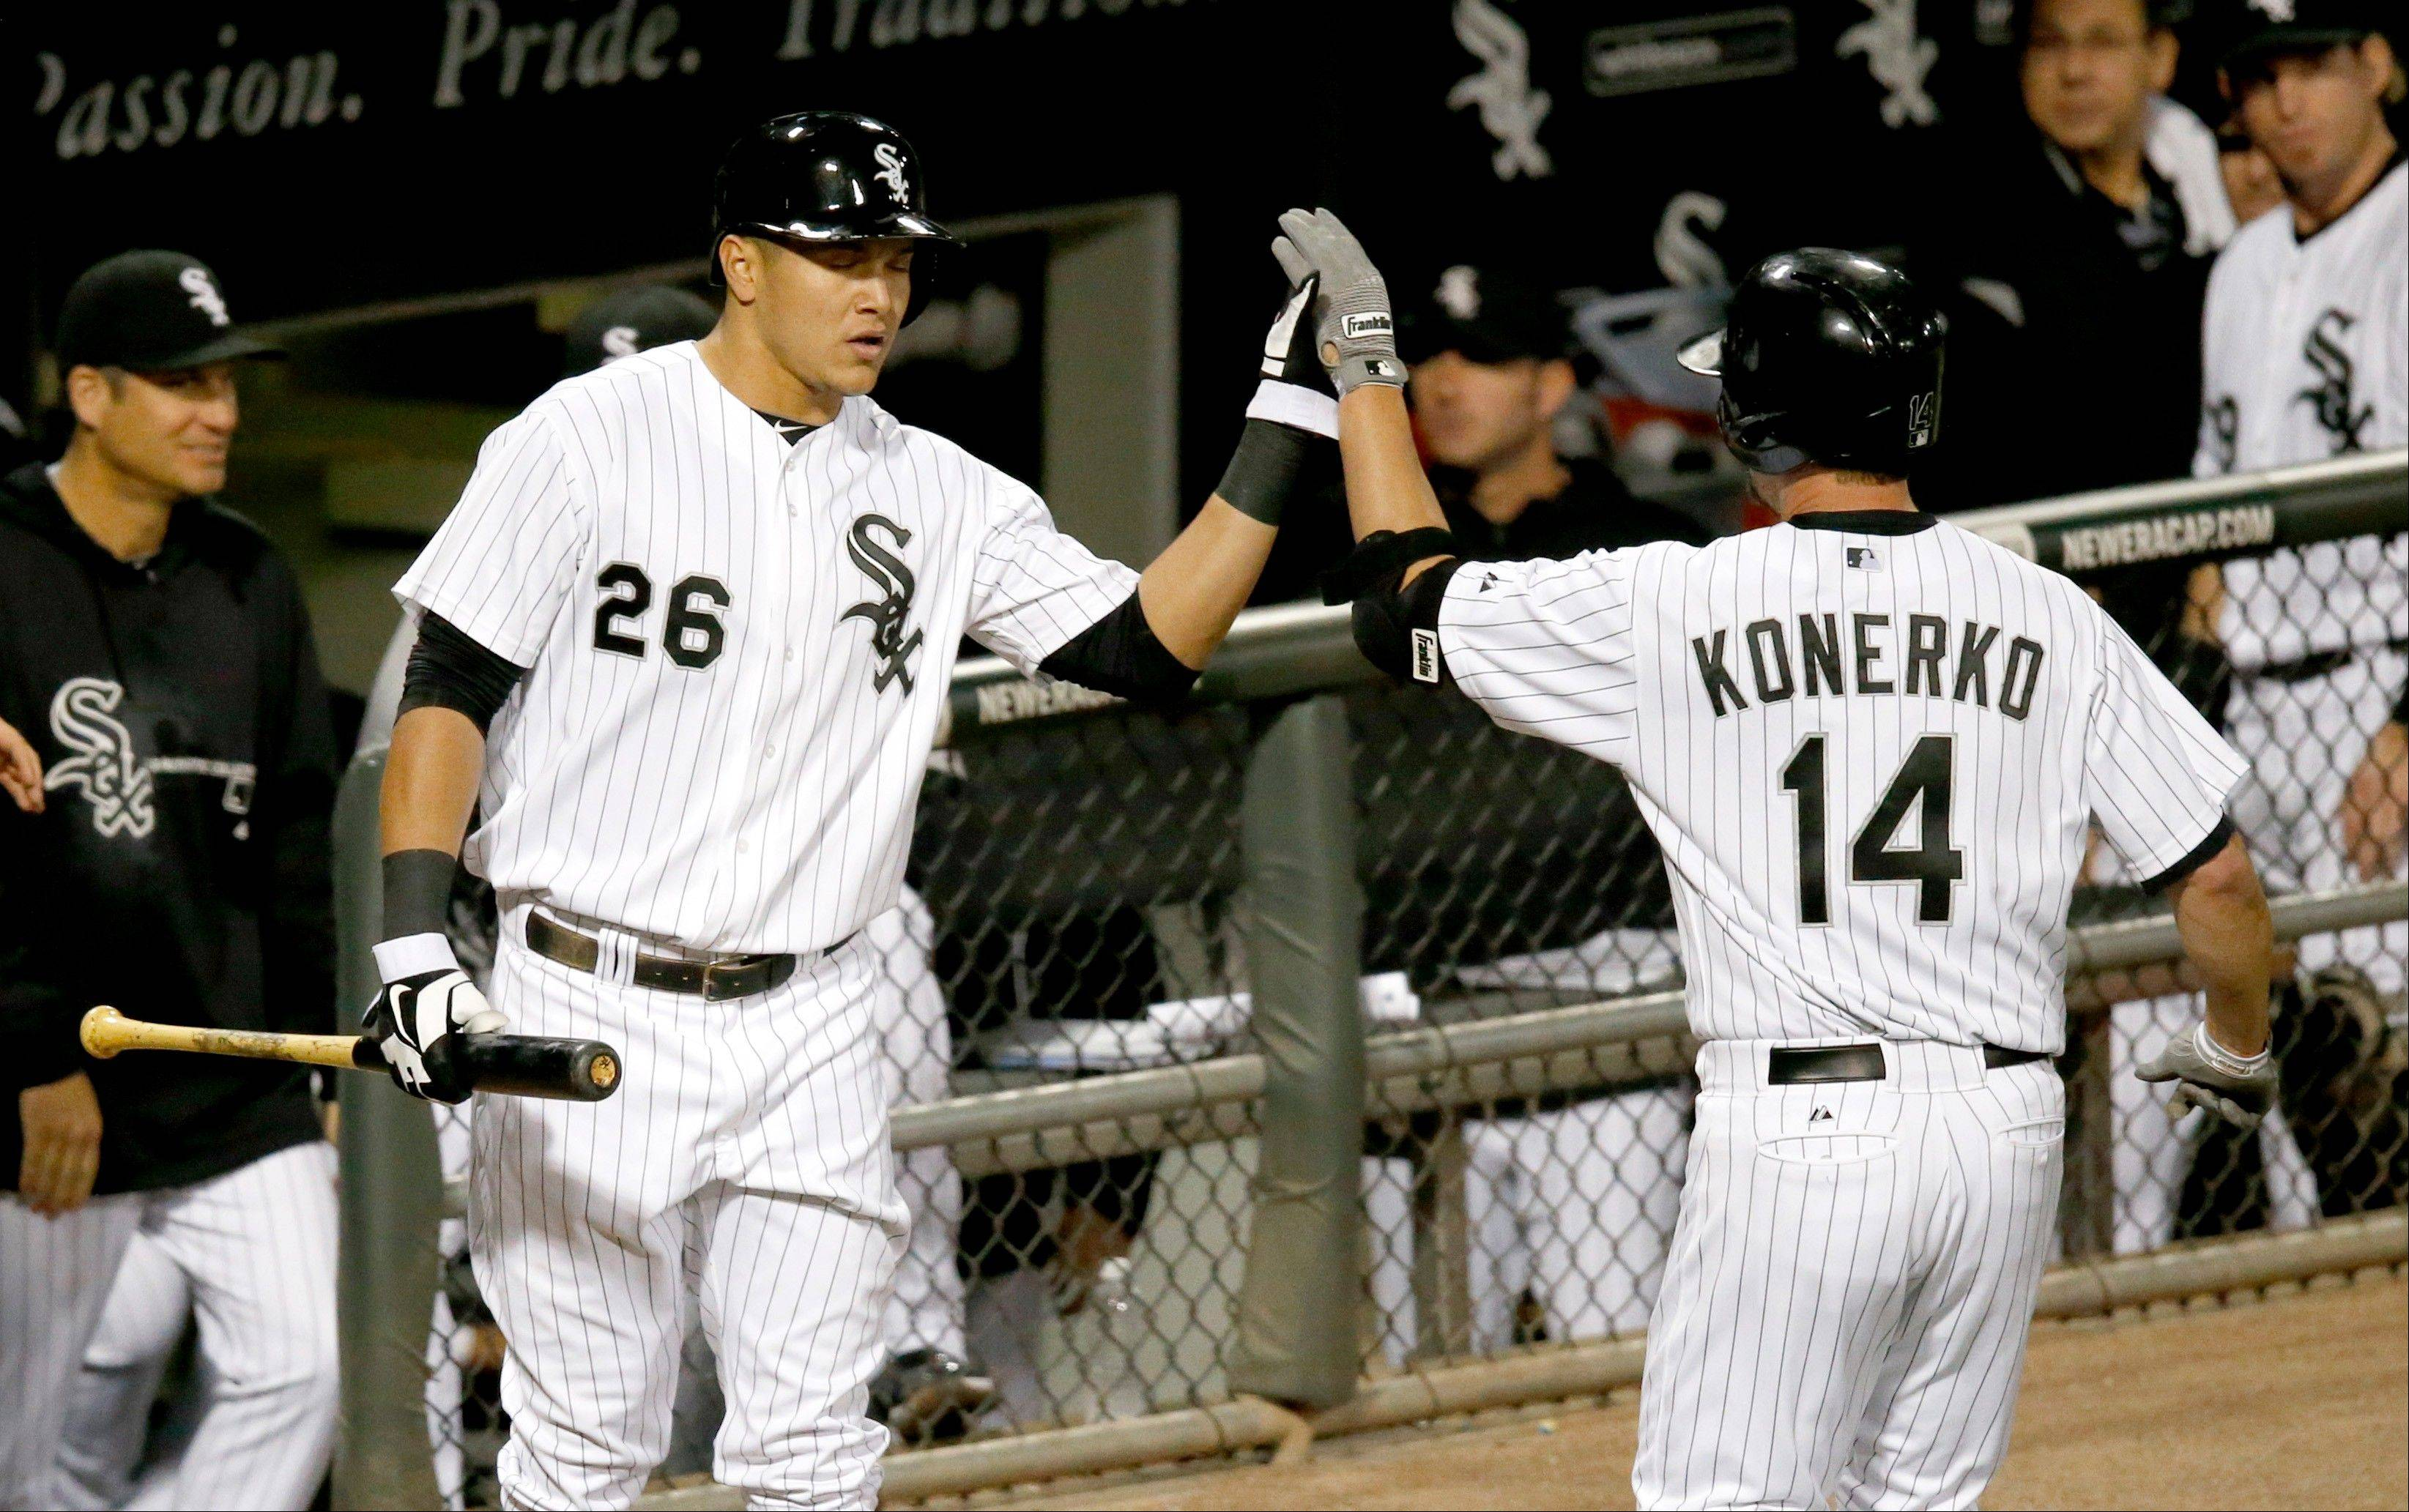 The White Sox' Avisail Garcia (26) greets Paul Konerko outside the dugout after Konerko's home run off Royals starting pitcher Jeremy Guthrie in the second inning Thursday night at U.S. Cellular Field.